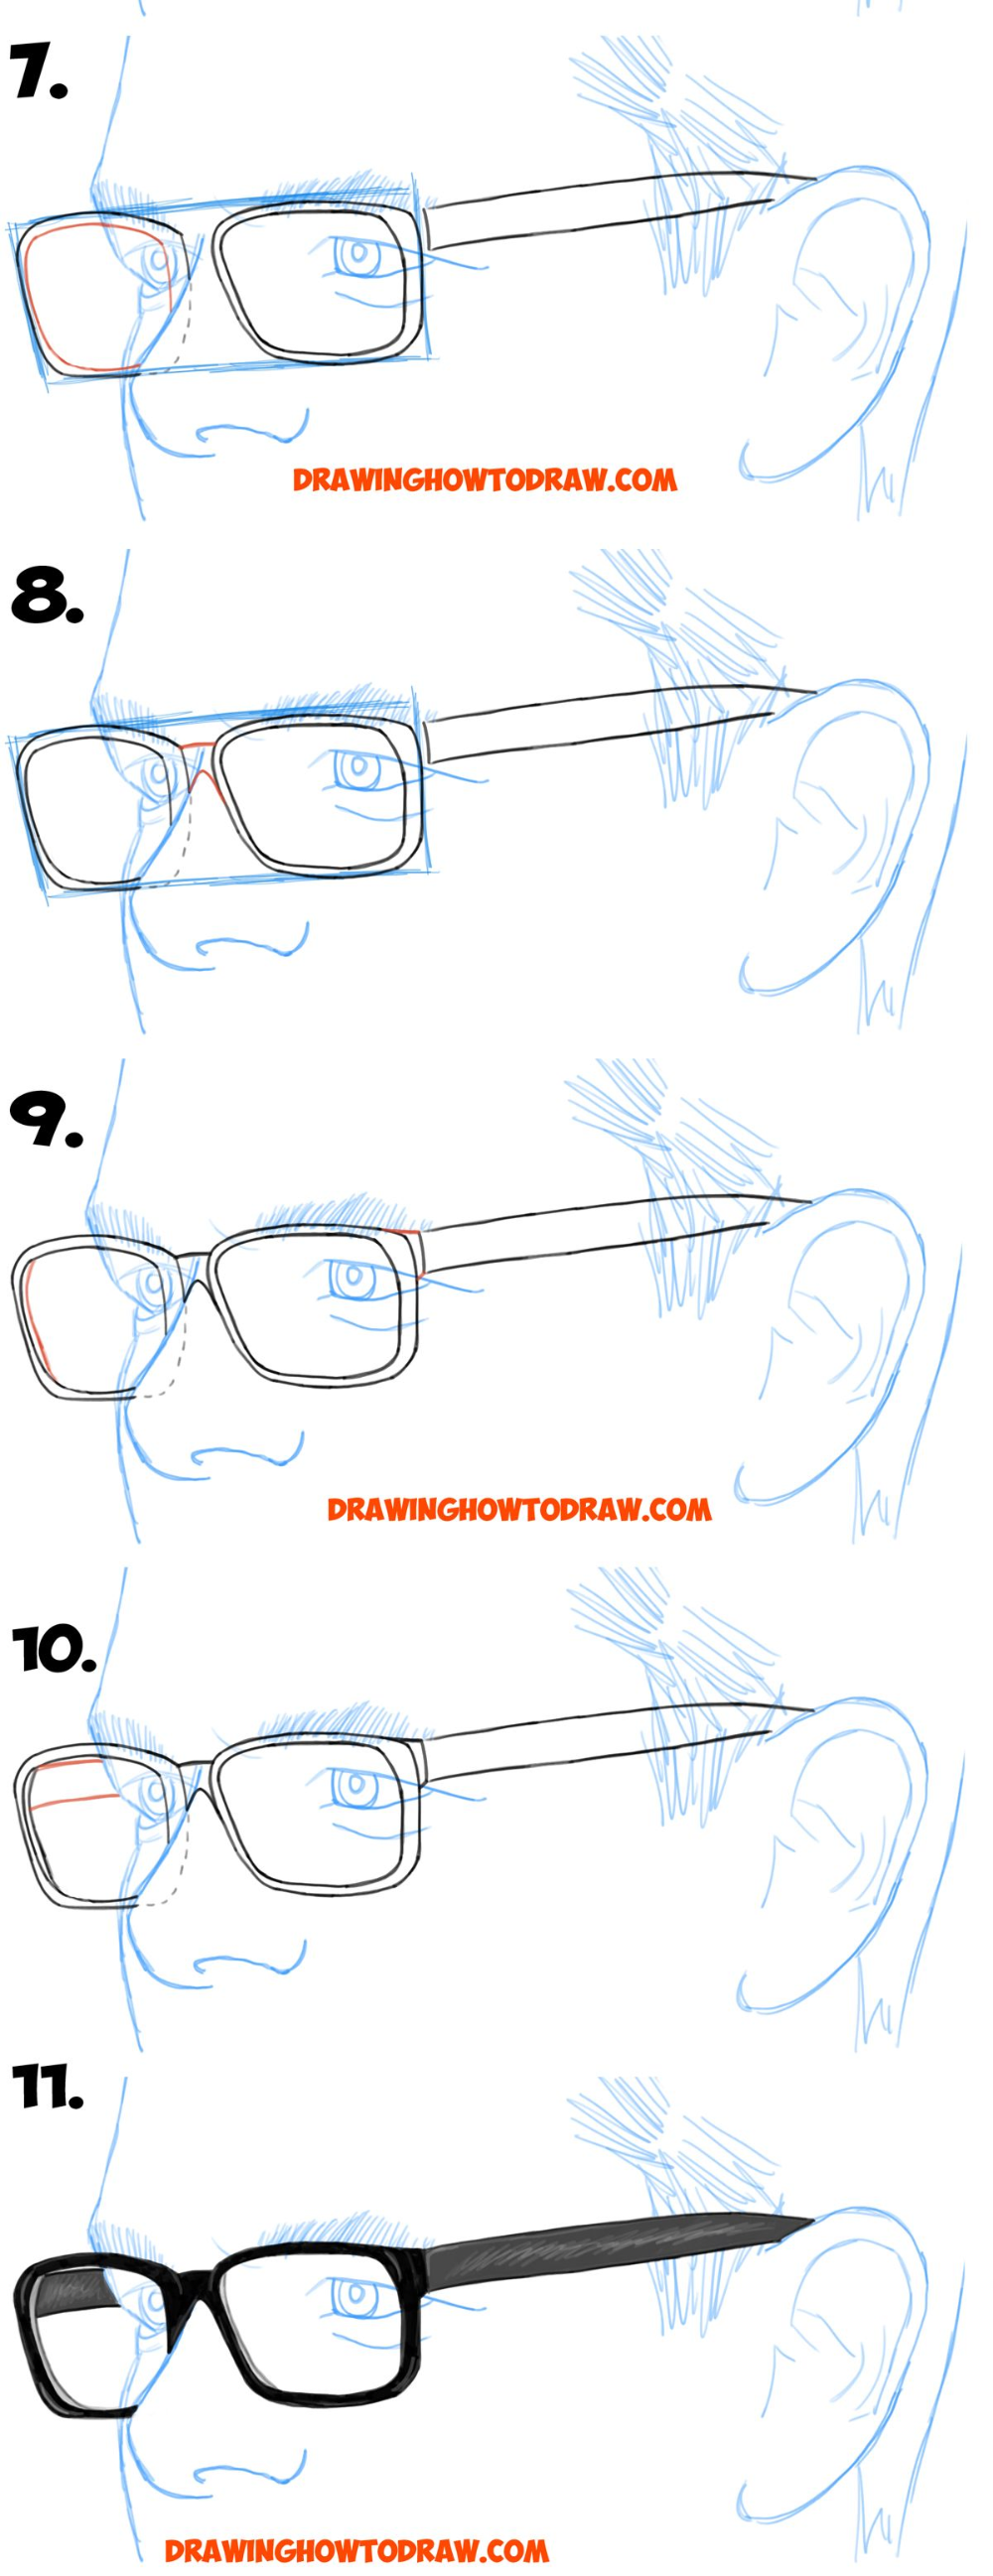 Glasses 3 4 View Google Search In 2020 How To Draw Glasses Drawing Tutorials For Beginners Drawing Tutorial